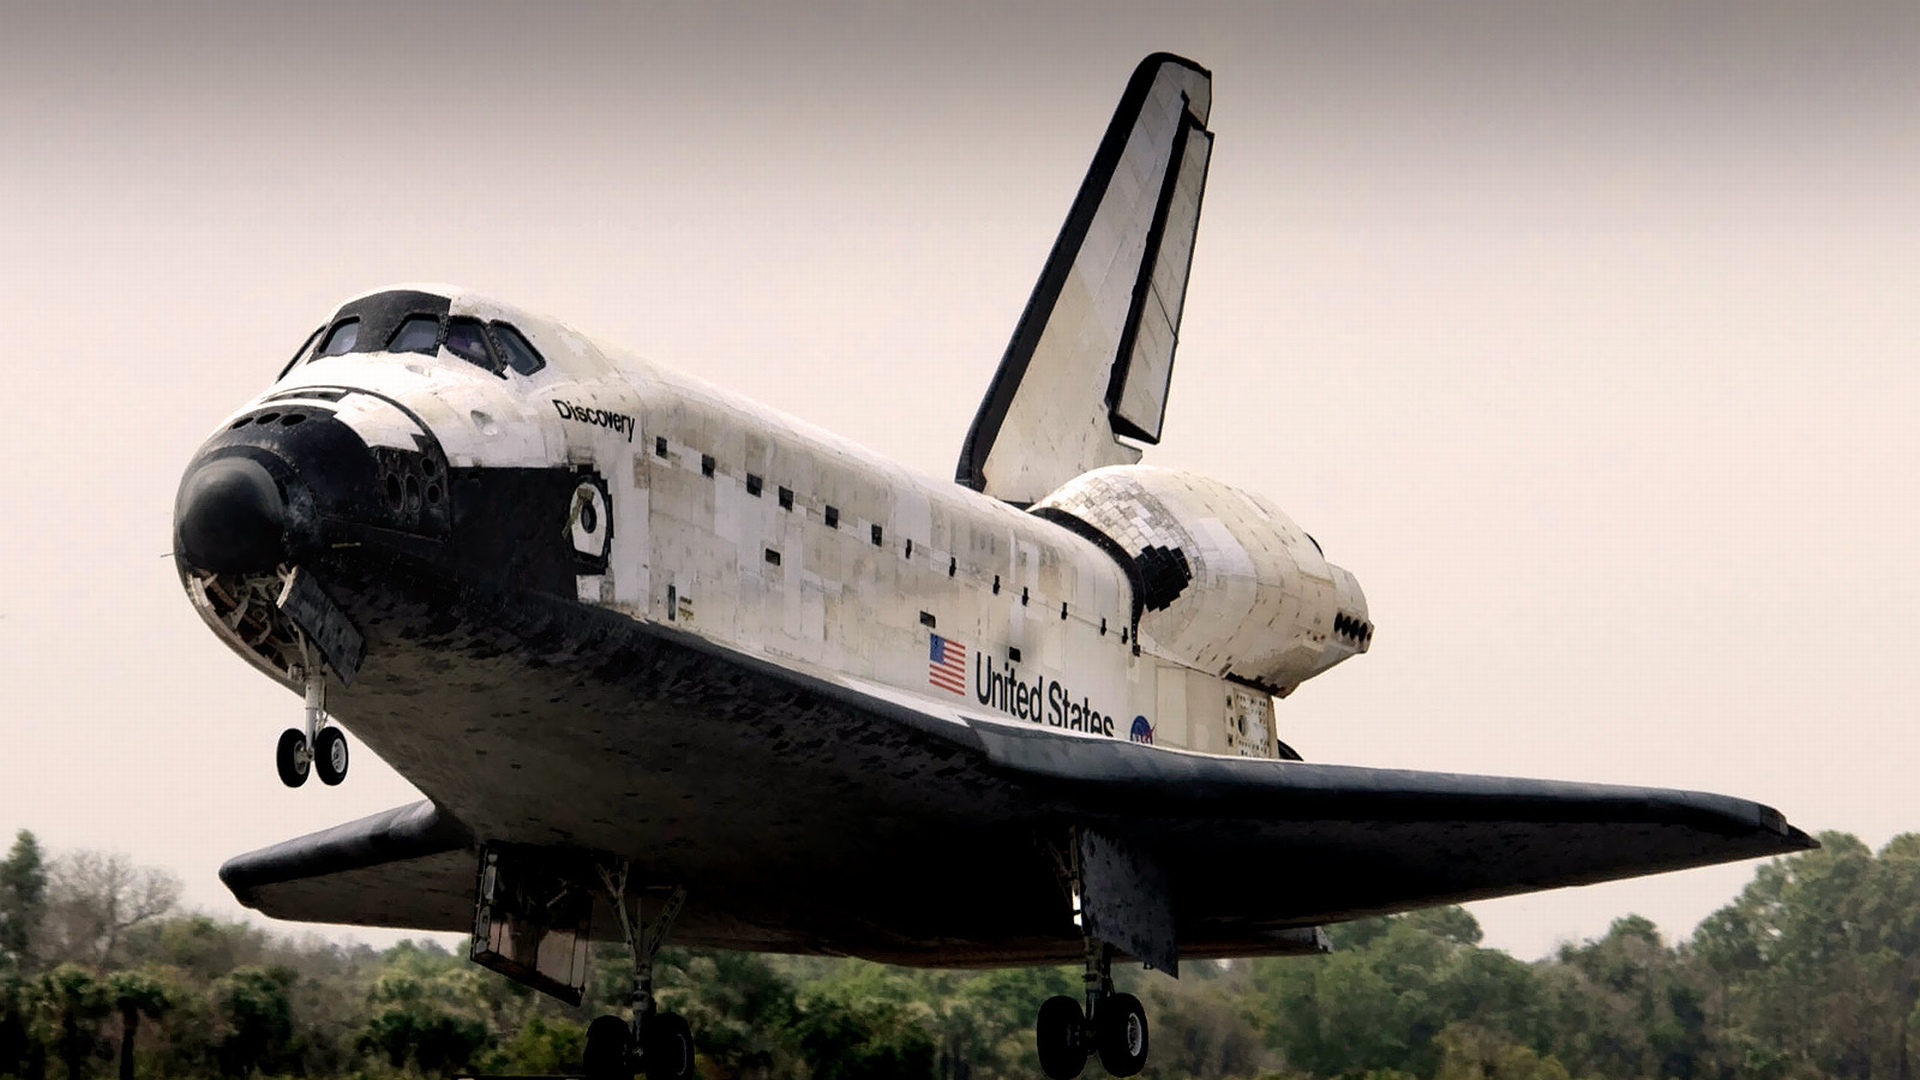 discovery space shuttle disaster - HD 1920×1080